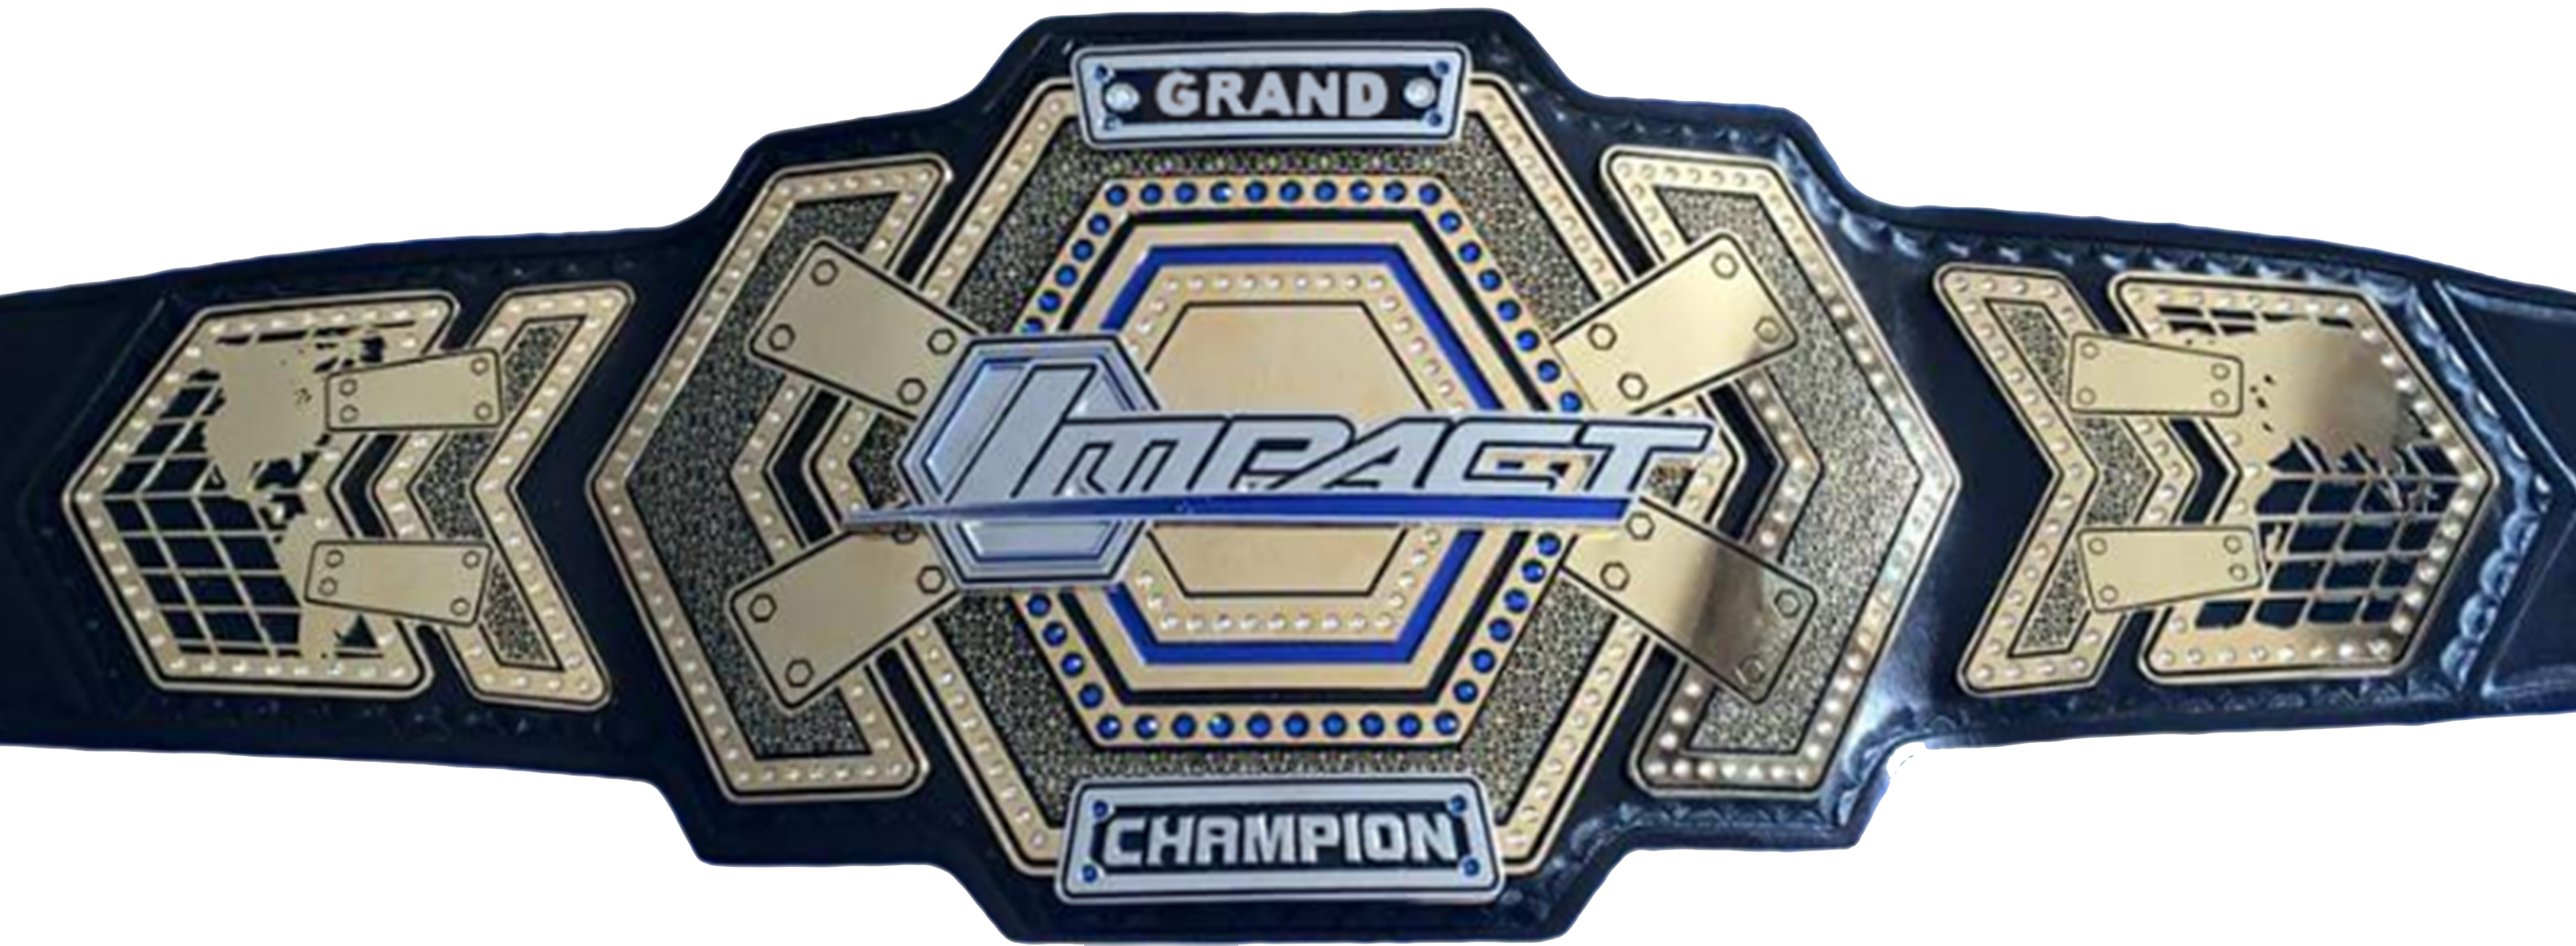 GFW Impact Grand Championship Belt.png